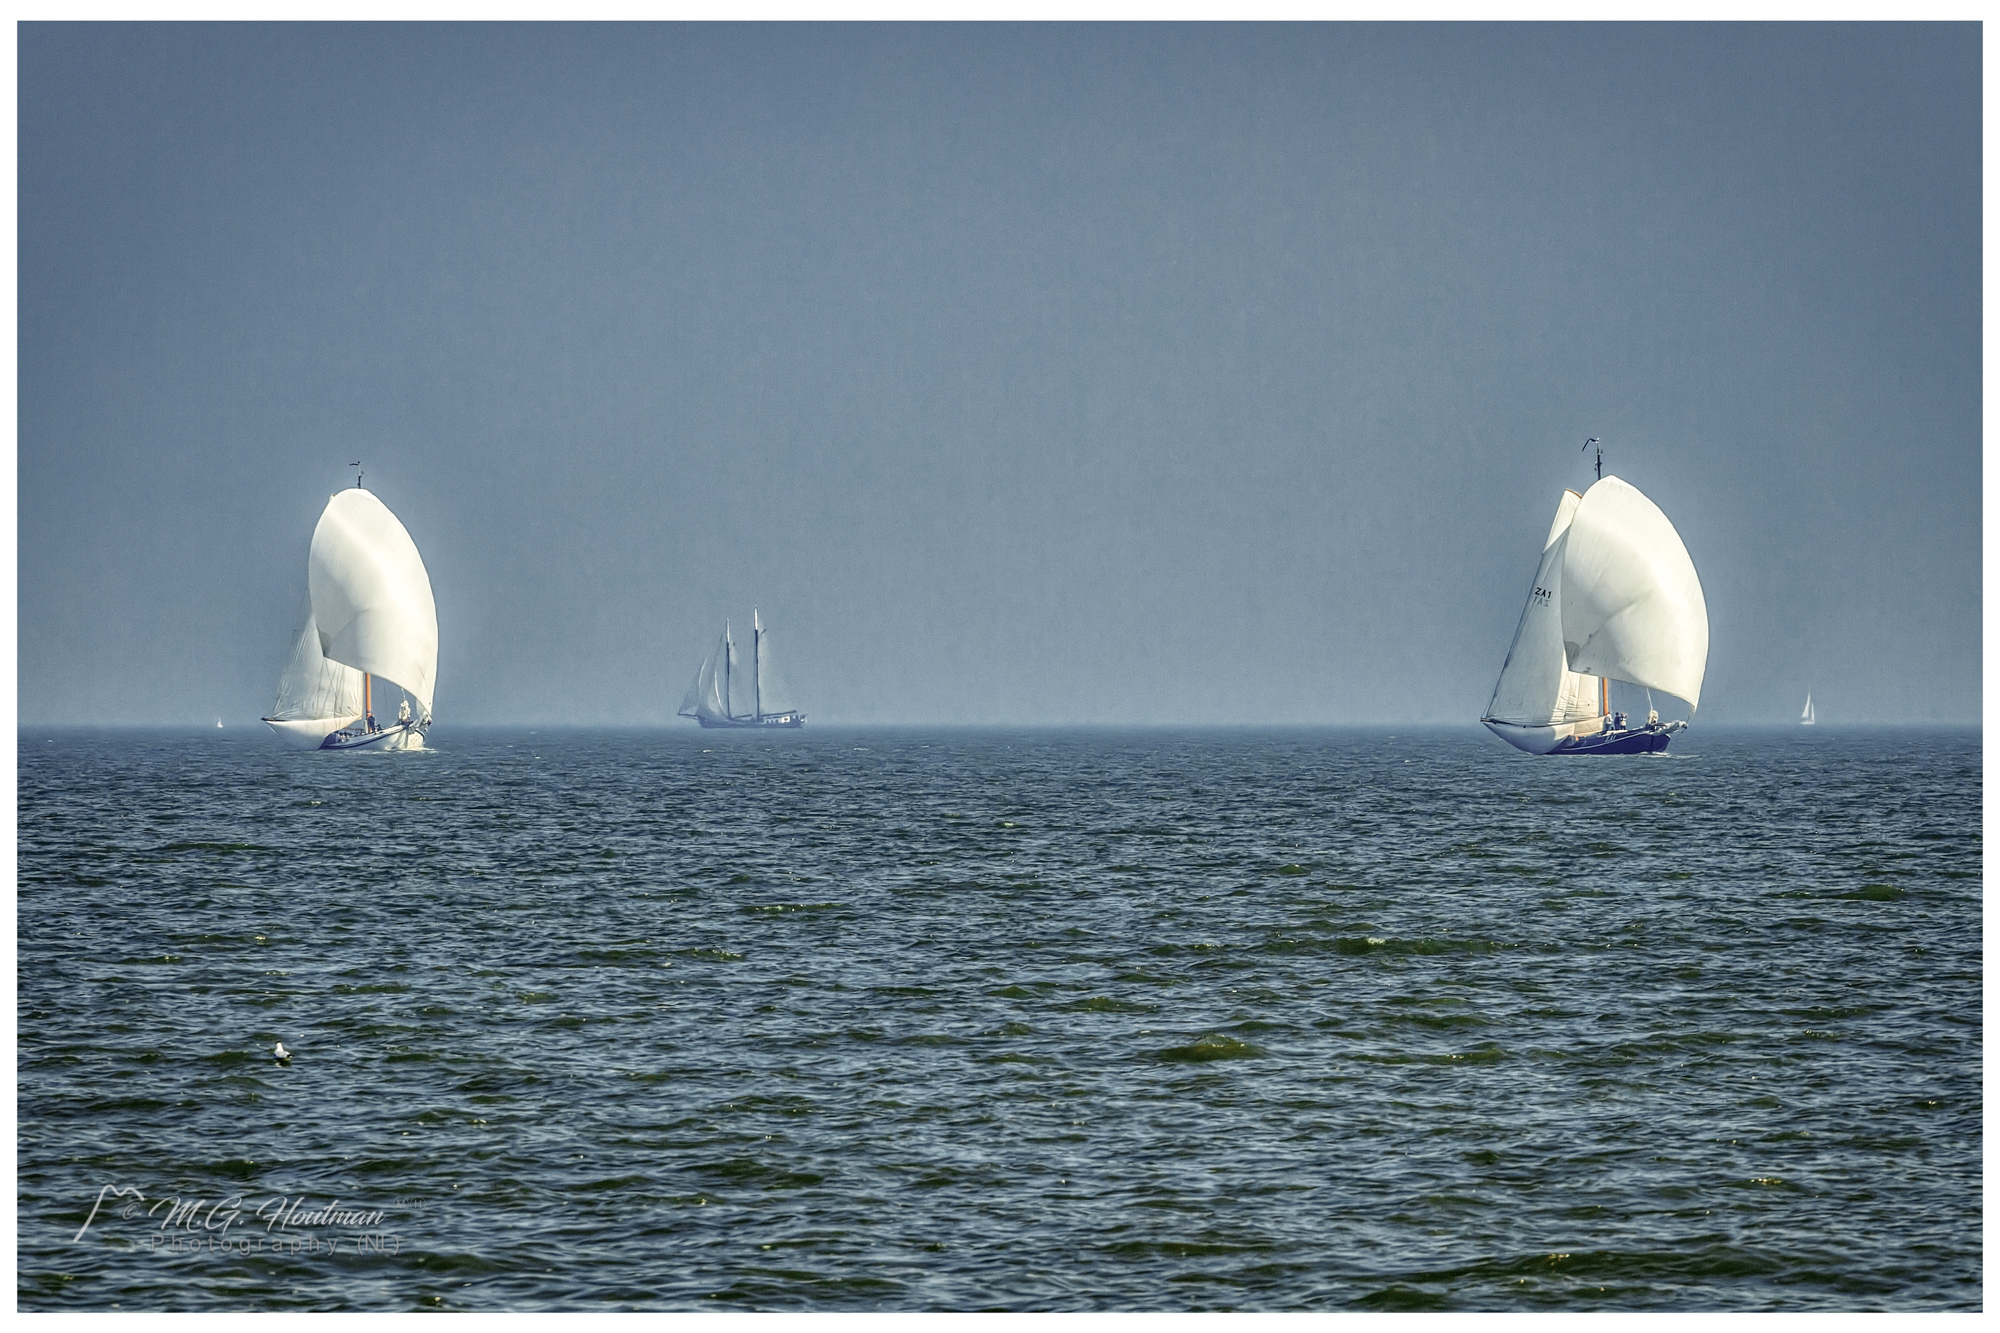 Sailing in a race